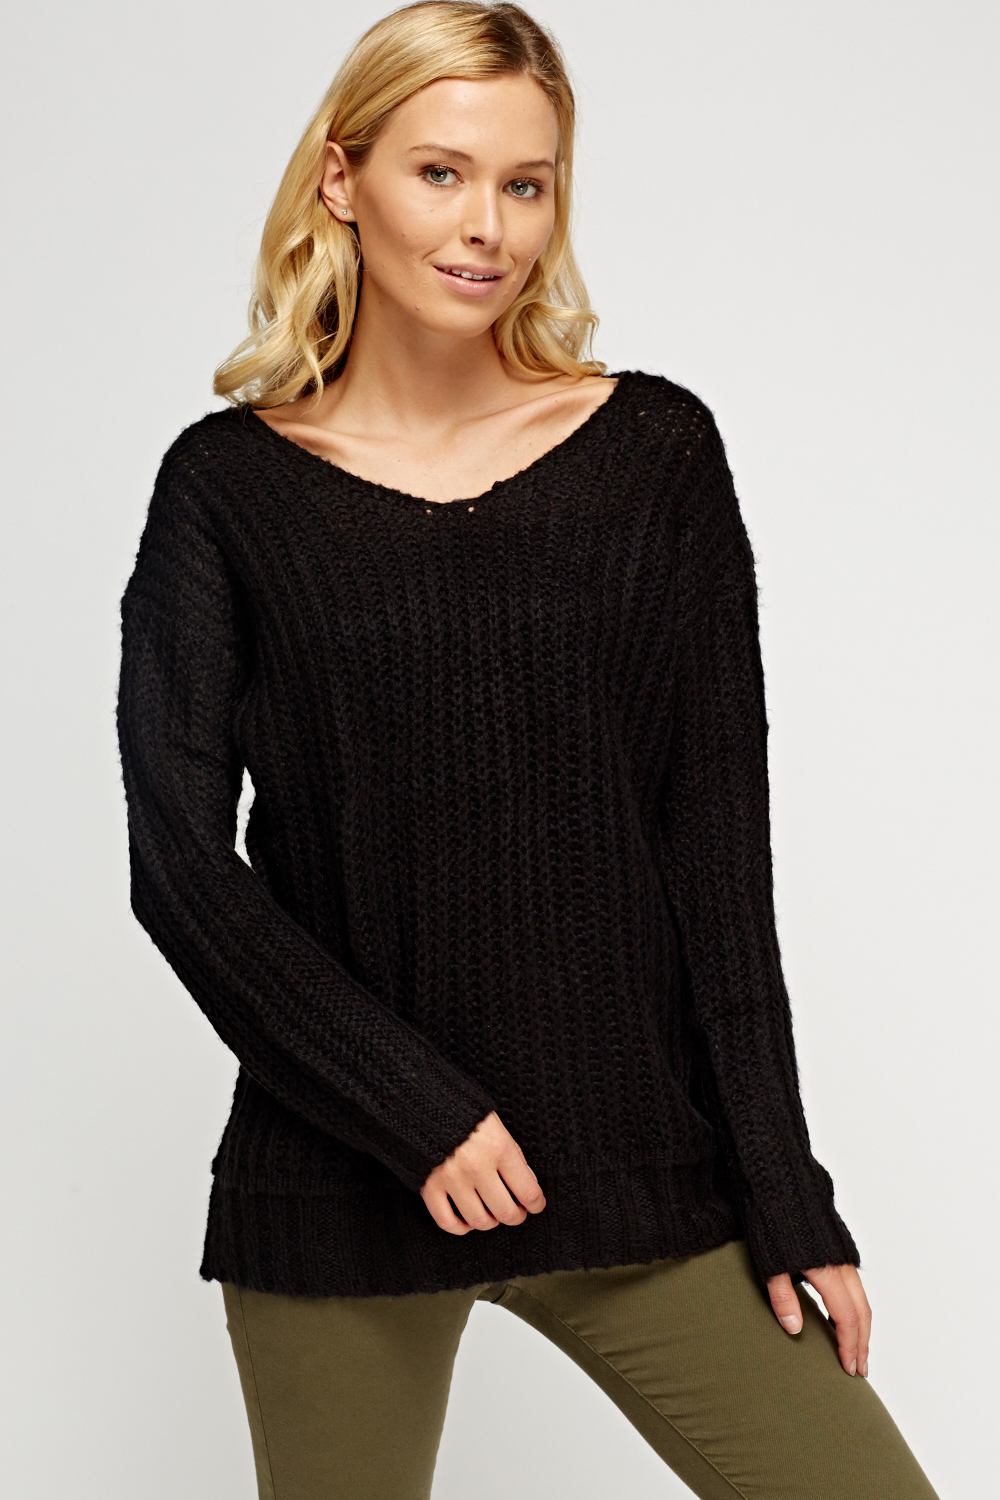 Loose Knit Open Front Cardigan - Just $3